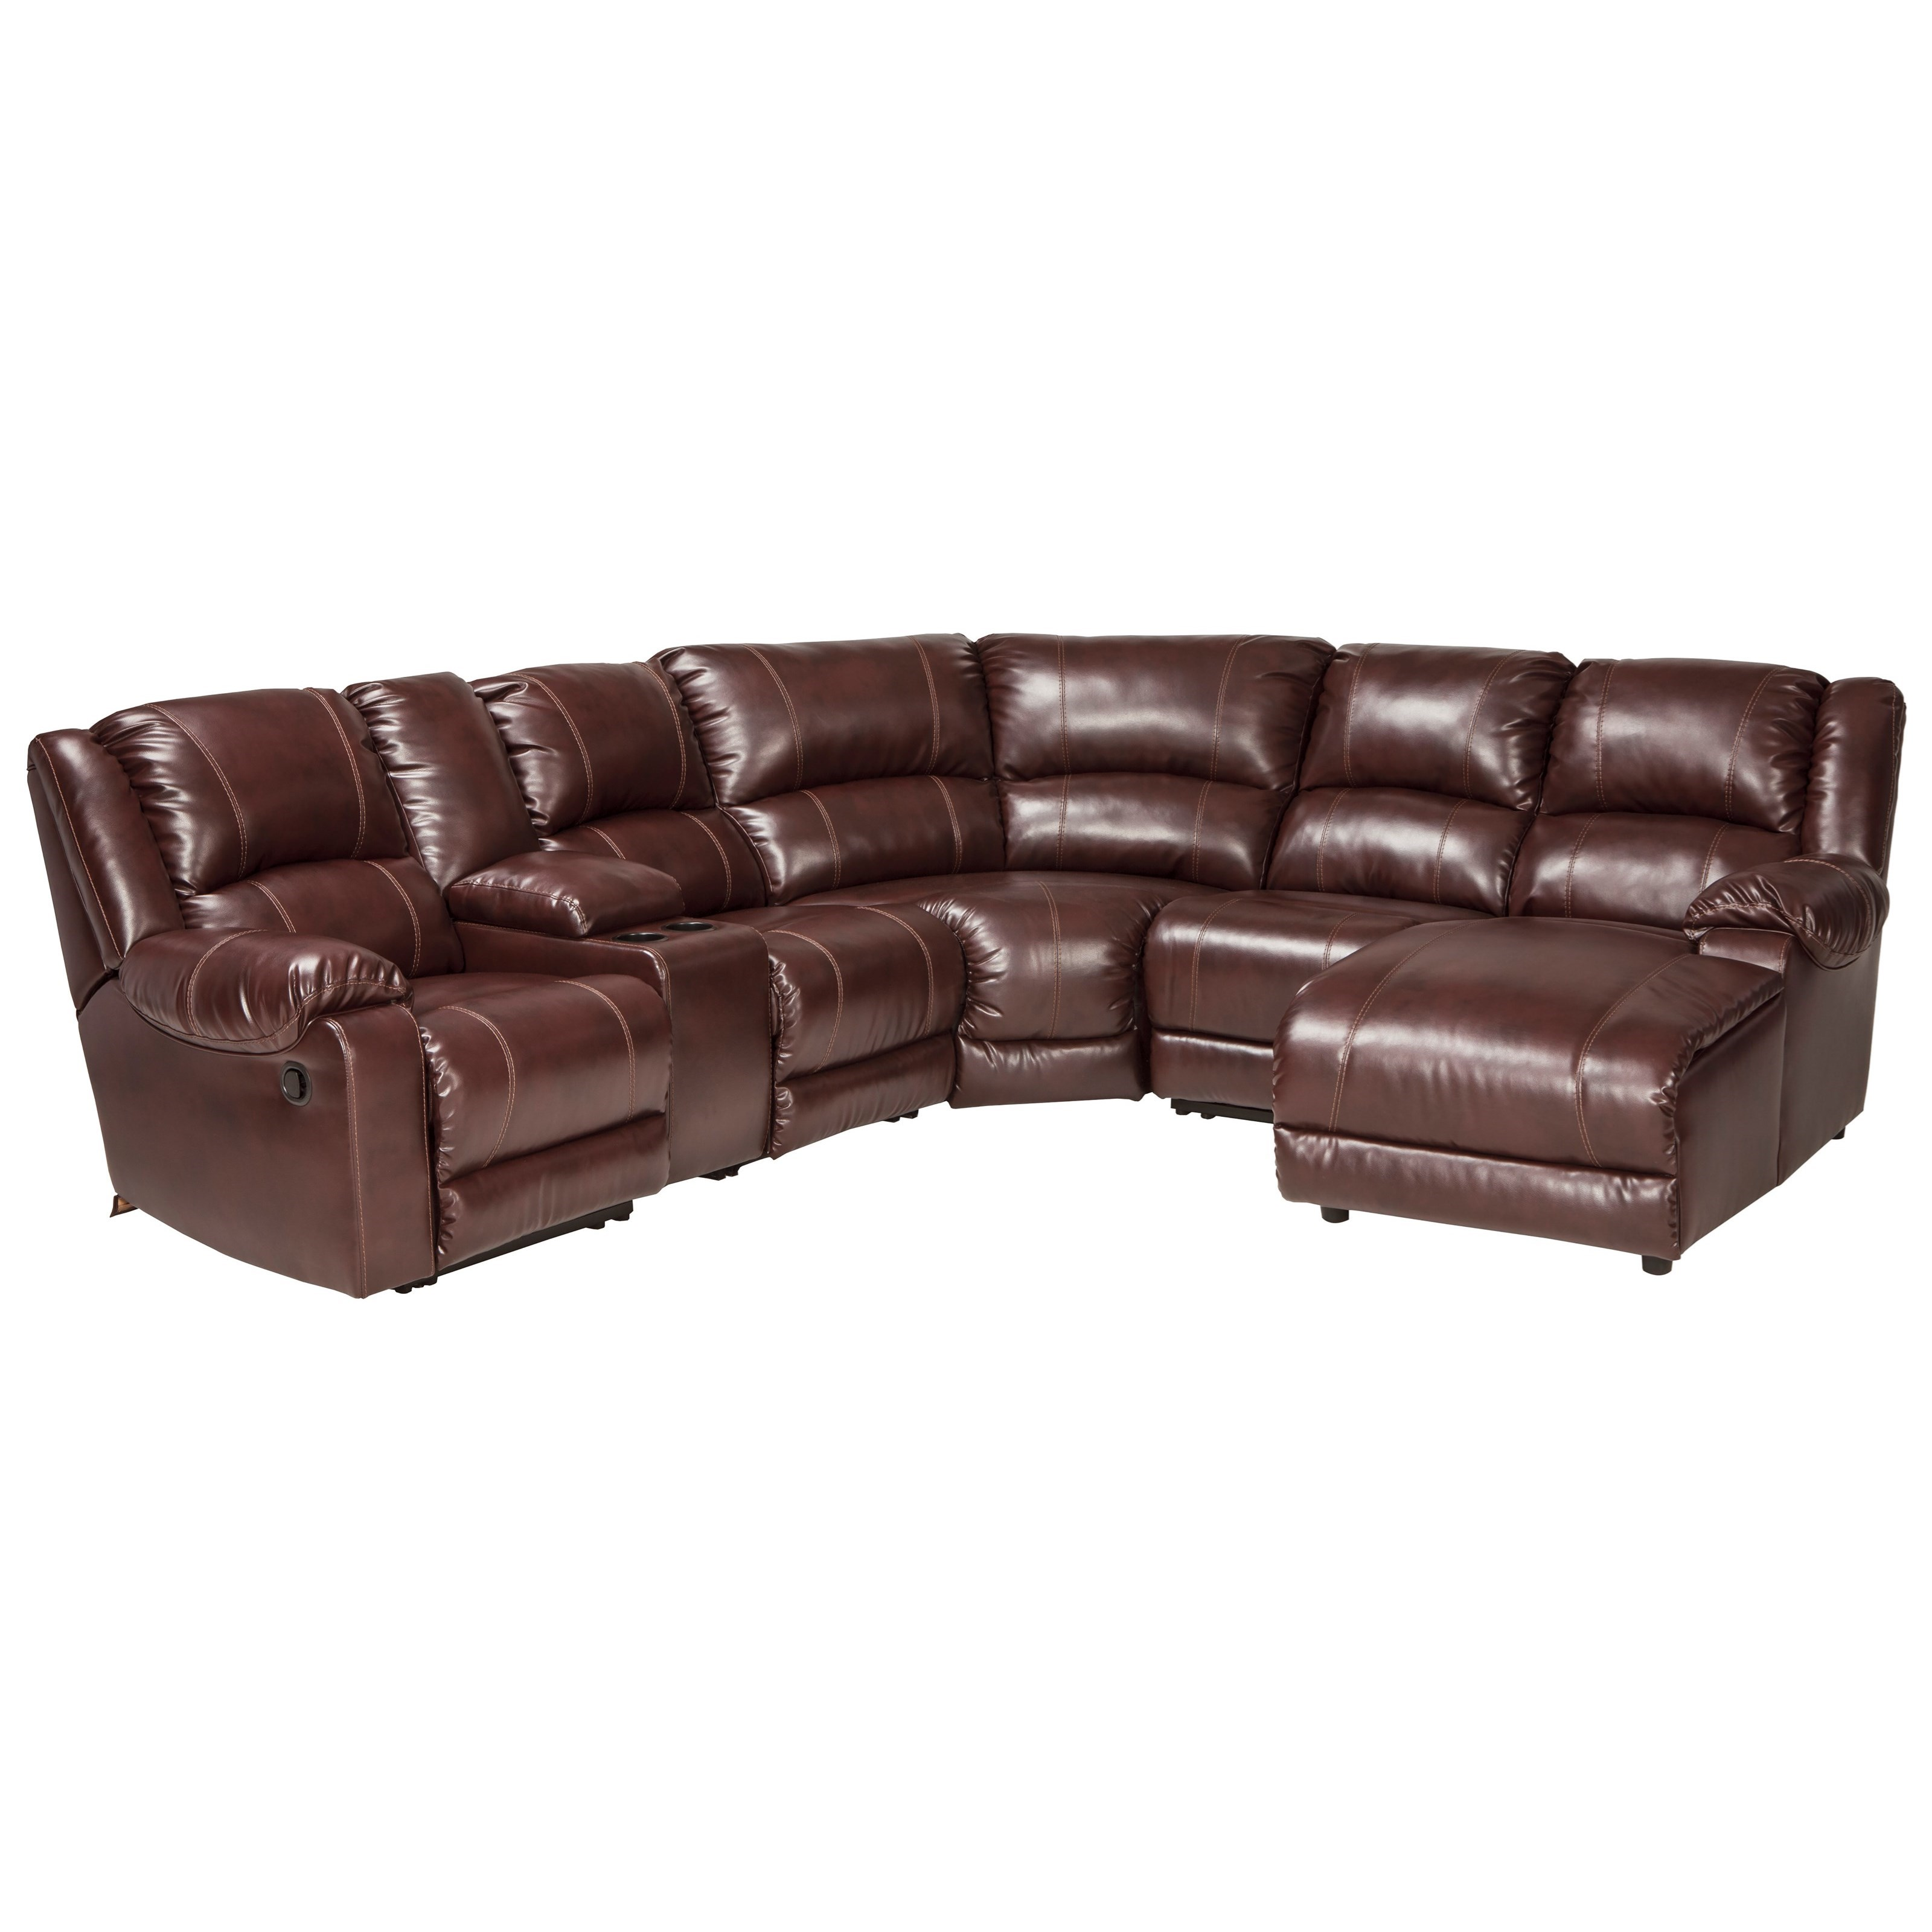 Signature design by ashley macgrath durablend reclining for Ashley chaise lounge sofa